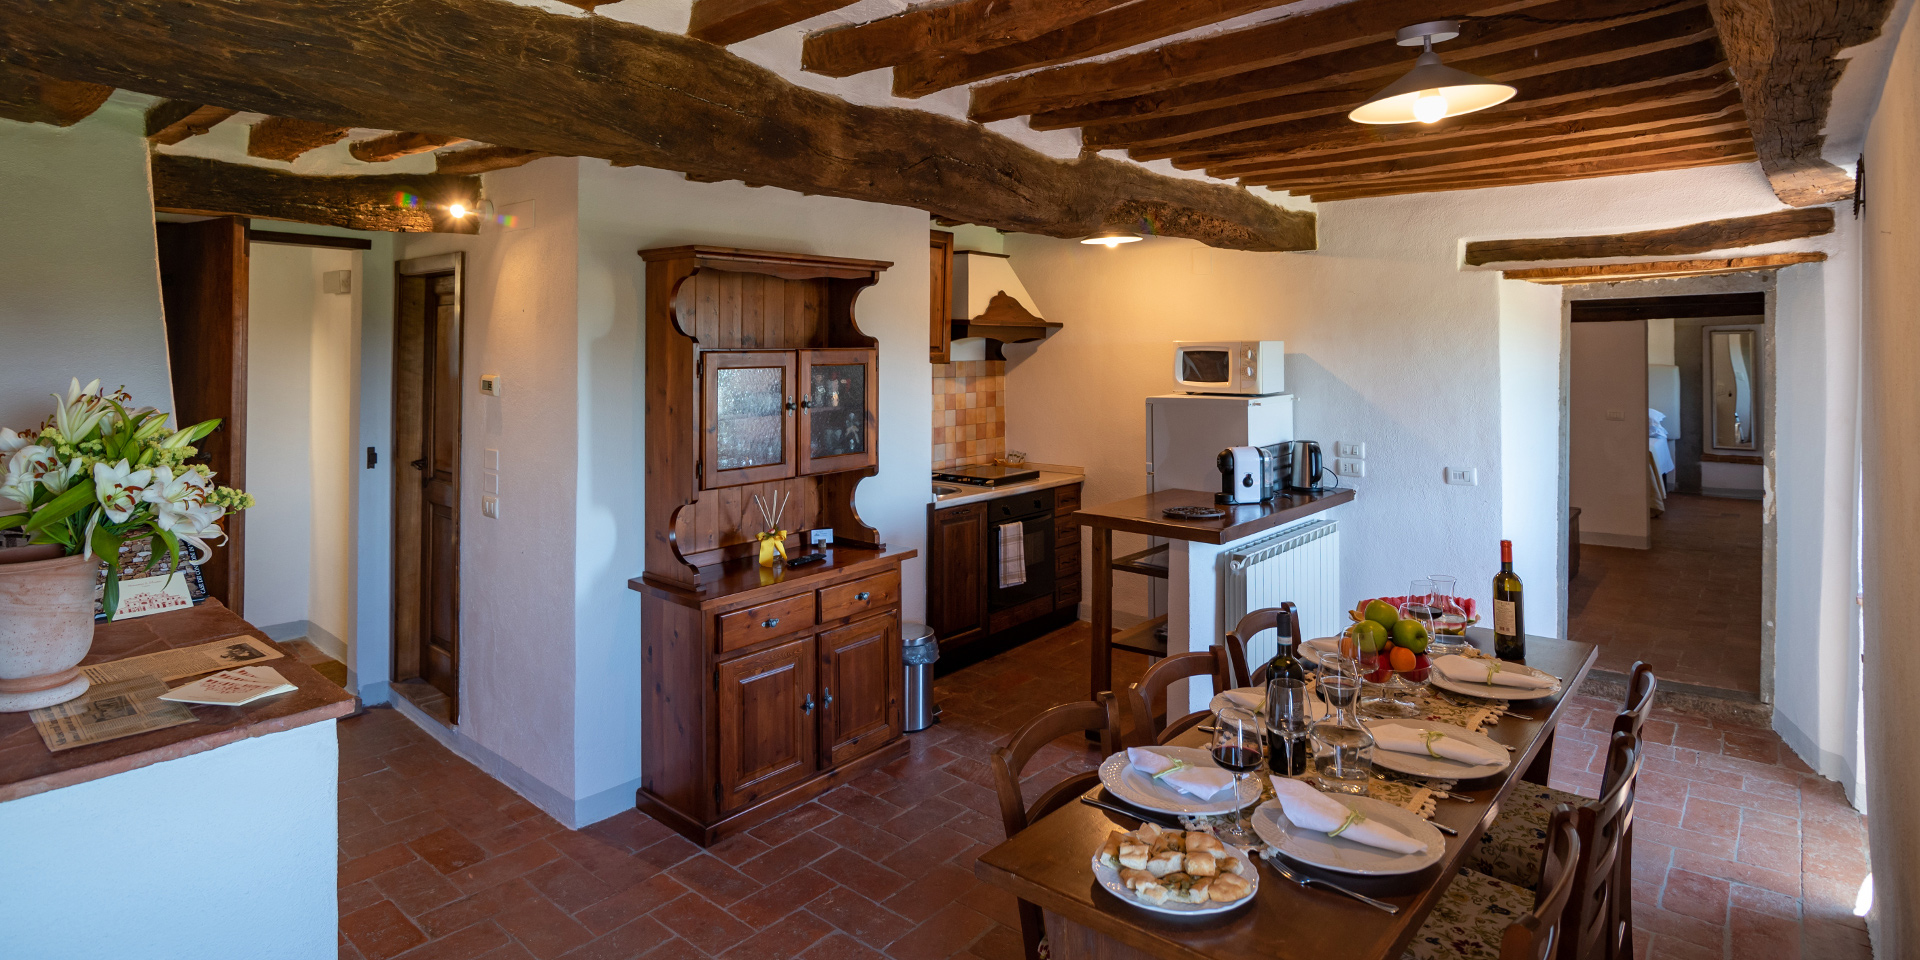 Living room and kitchen in Saena Apartment, Monastero San Silvestro